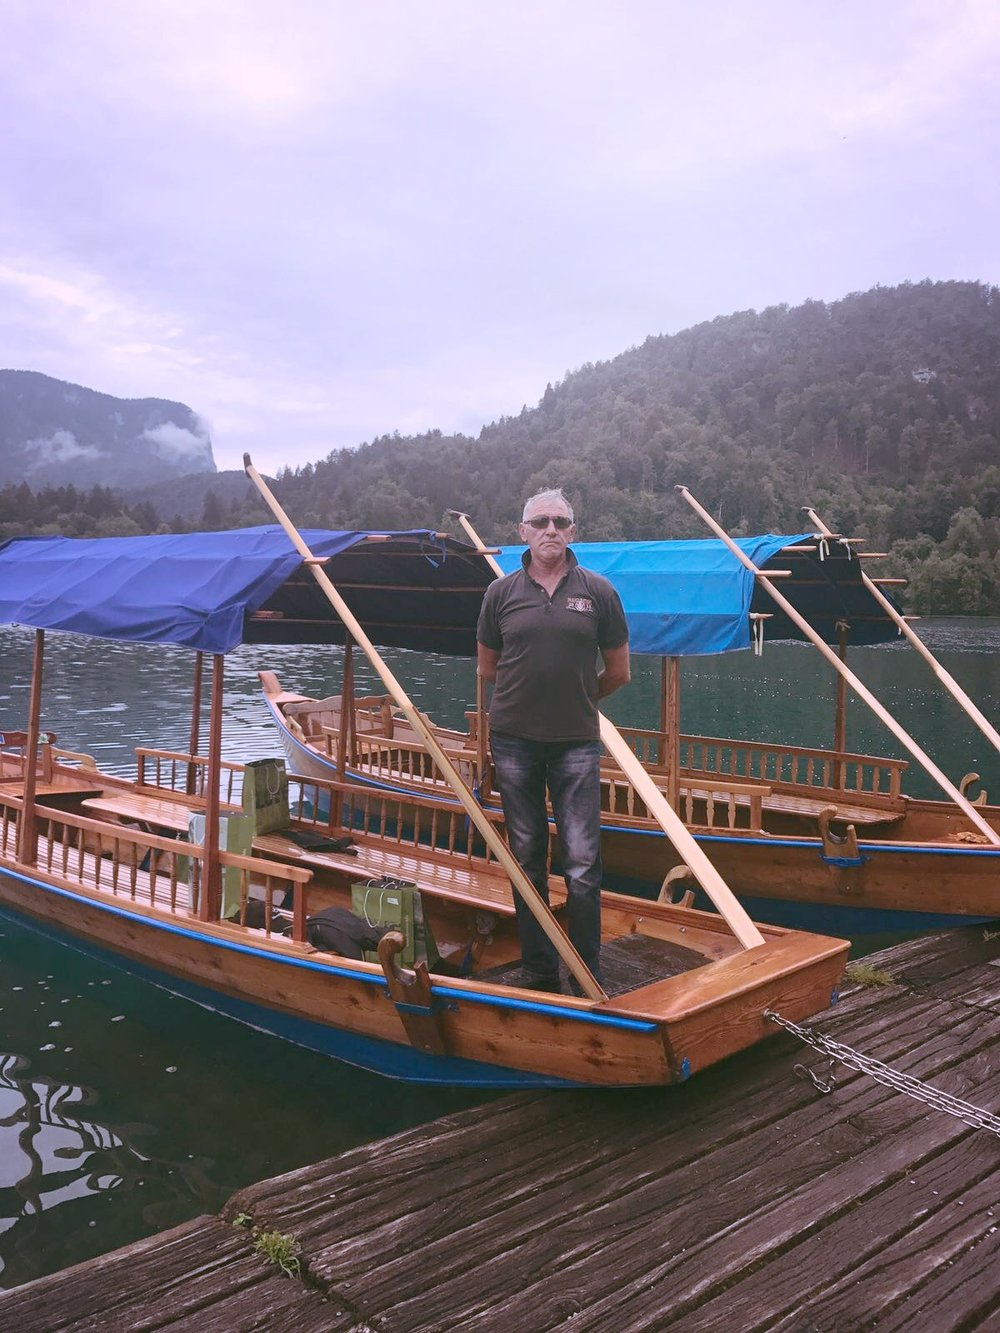 One way to get to the island in the middle of Lake Bled is on these hand rowed boats.